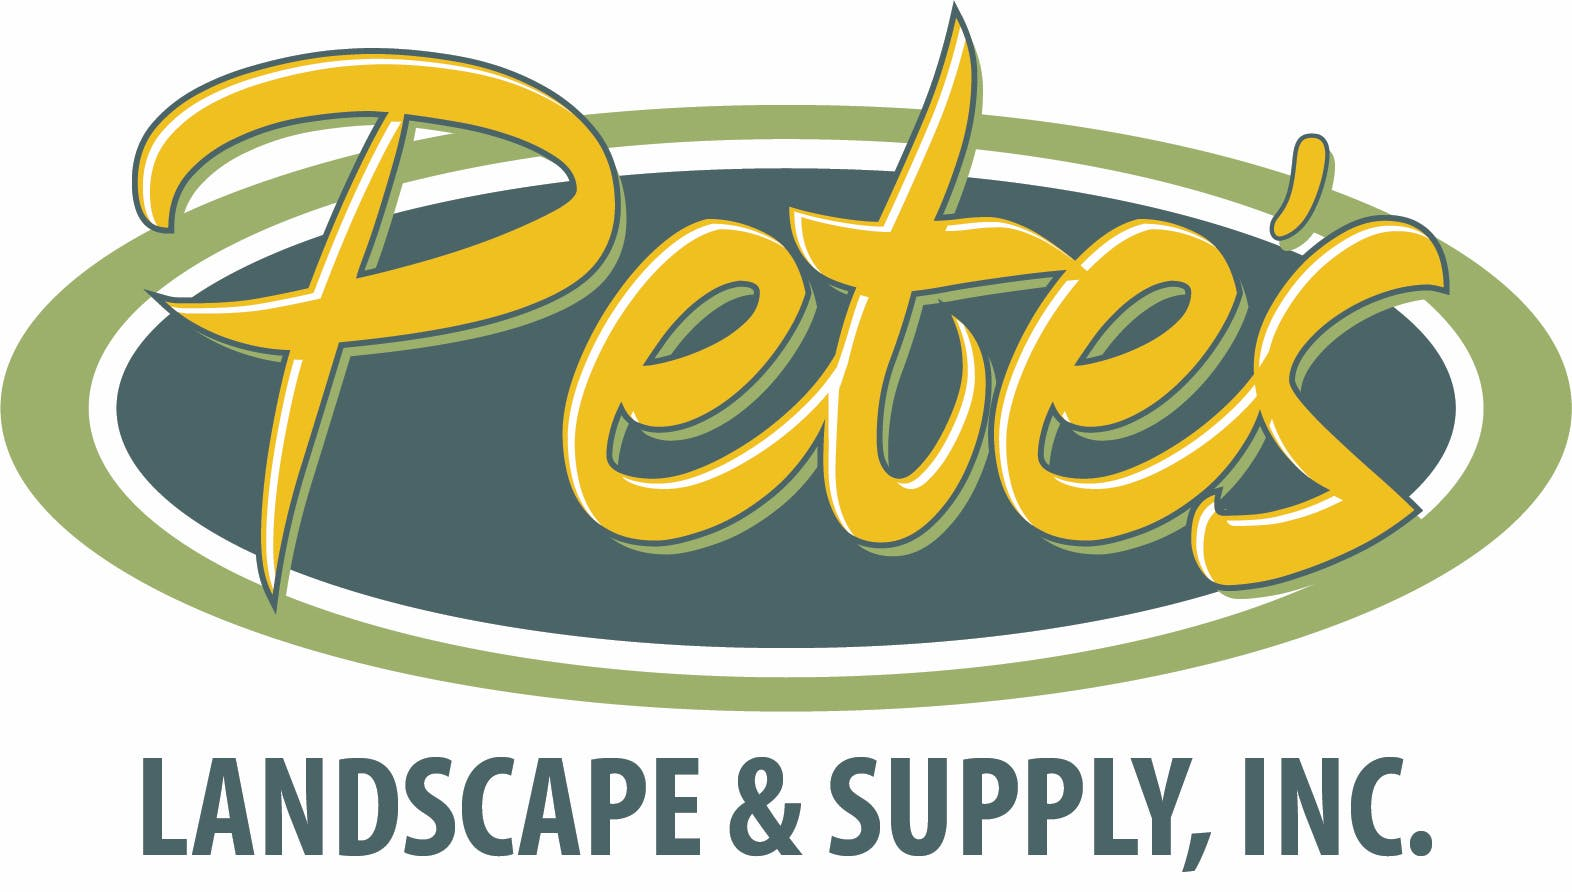 Company logo for 'Pete's Landscaping & Supply'.